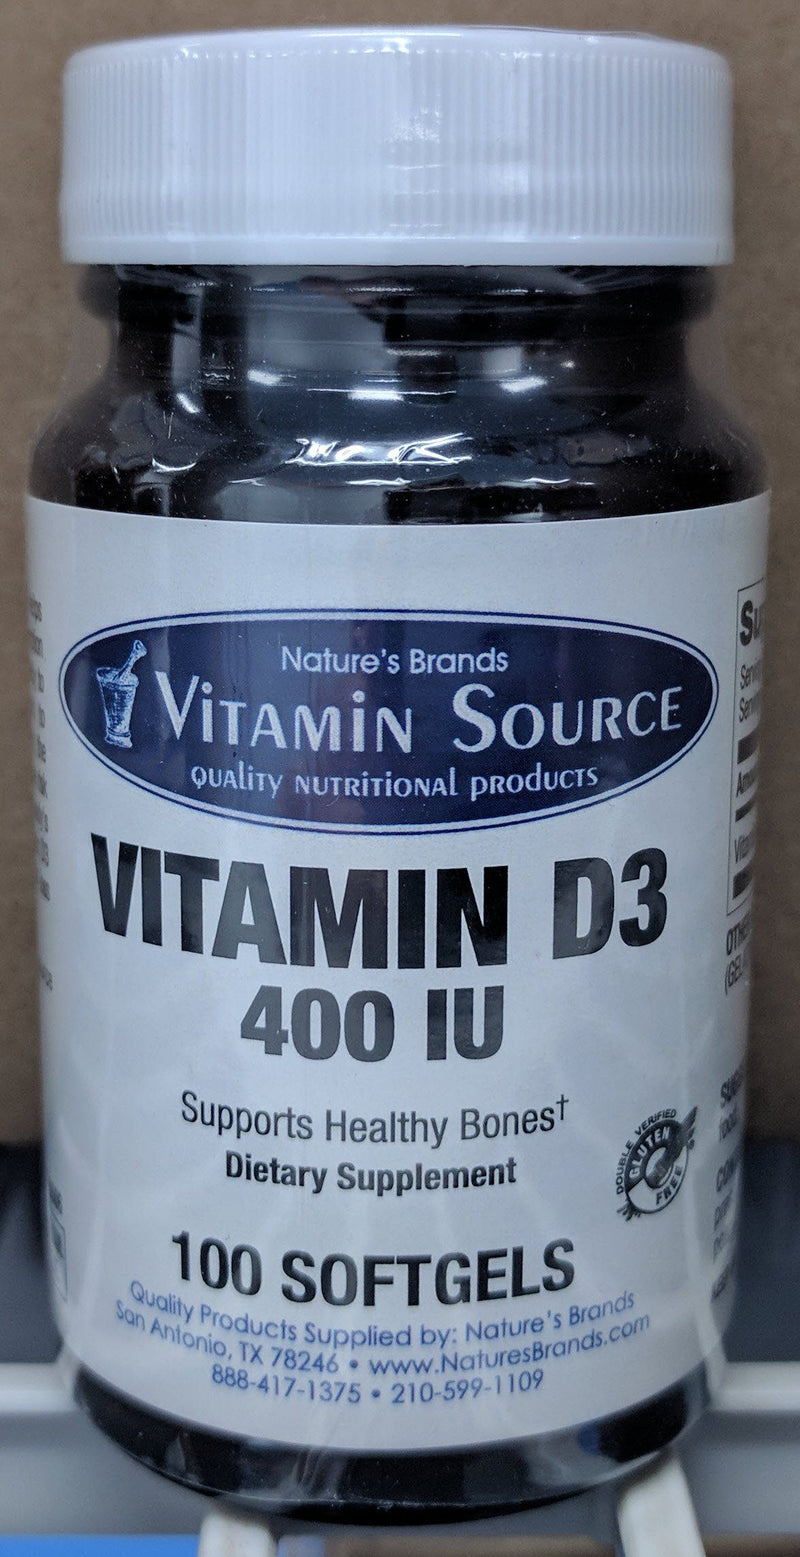 Vitamin Source Vitamin D3 400 IU 100 Softgels - Vitamin Source Vitamin D3 400 IU 100 Softgels - Vitamin Source Vitamin D3 400 IU 100 Softgels